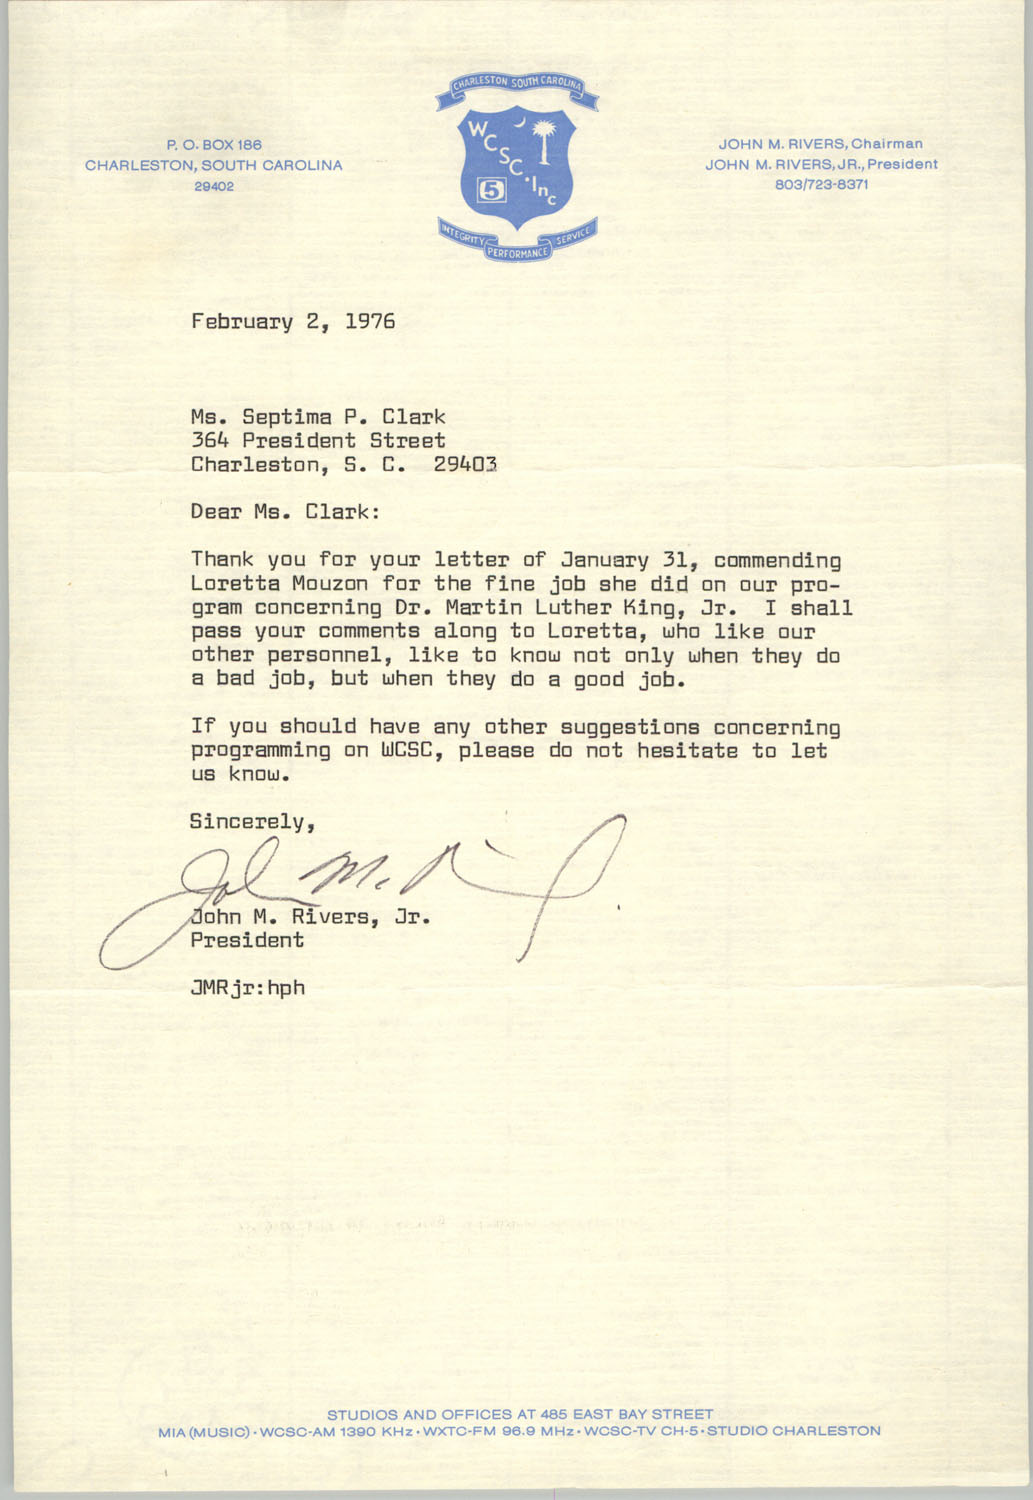 Letter from John M. Rivers, Jr. to Septima P. Clark, February 2, 1976